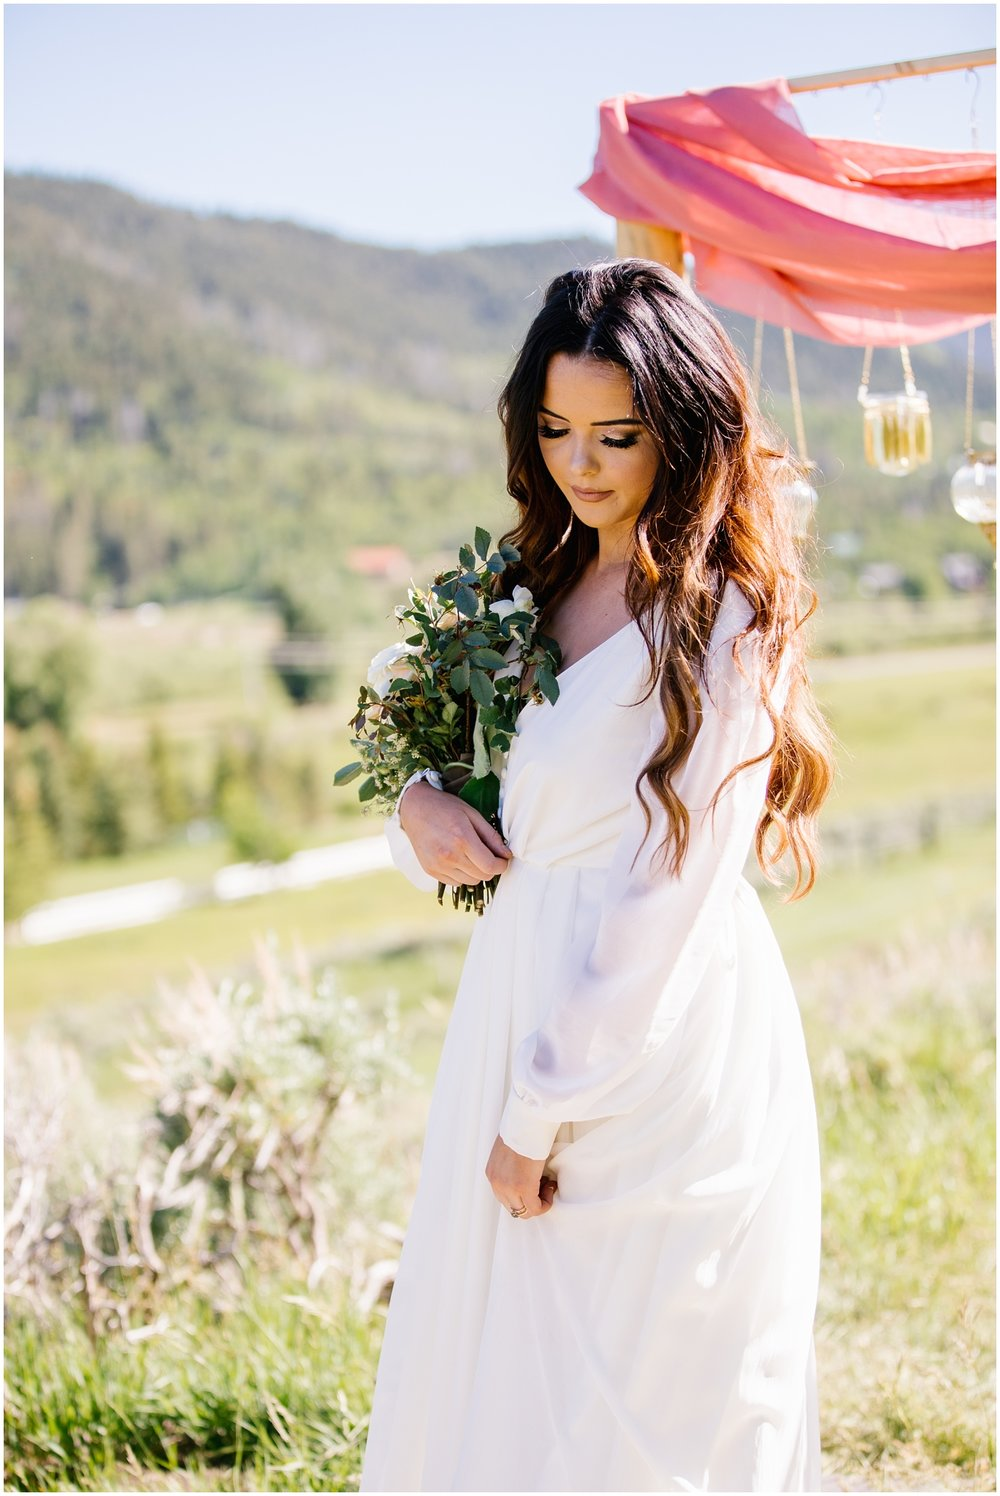 MountainShoot-11_Lizzie-B-Imagery-Utah-Wedding-Photographer-Park-City-Salt-Lake-City-Oakley-Utah-North-Forty-Escapes.jpg